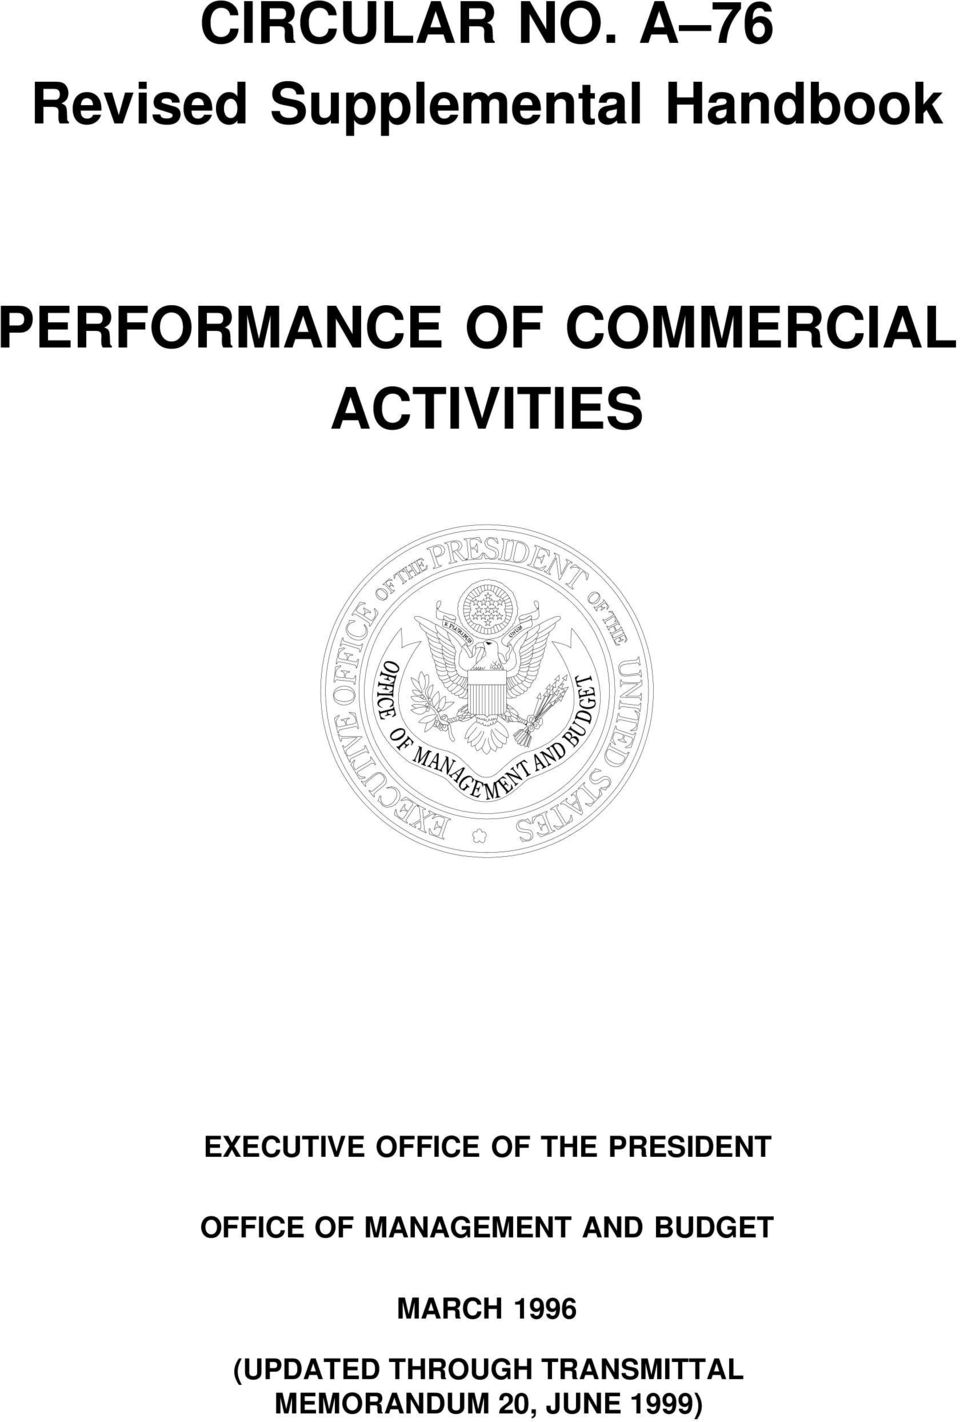 PERFORMANCE OF COMMERCIAL ACTIVITIES